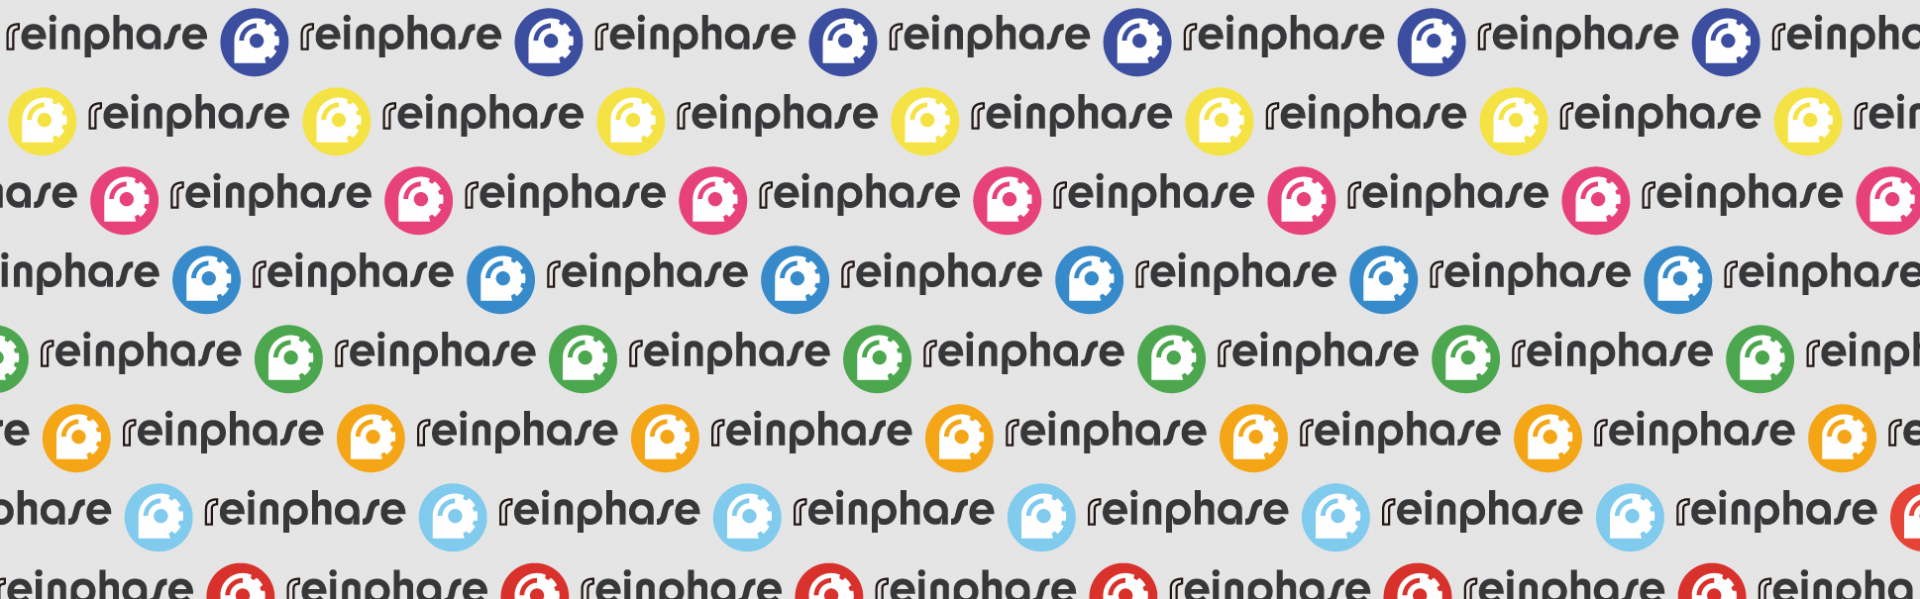 reinphase Inc.